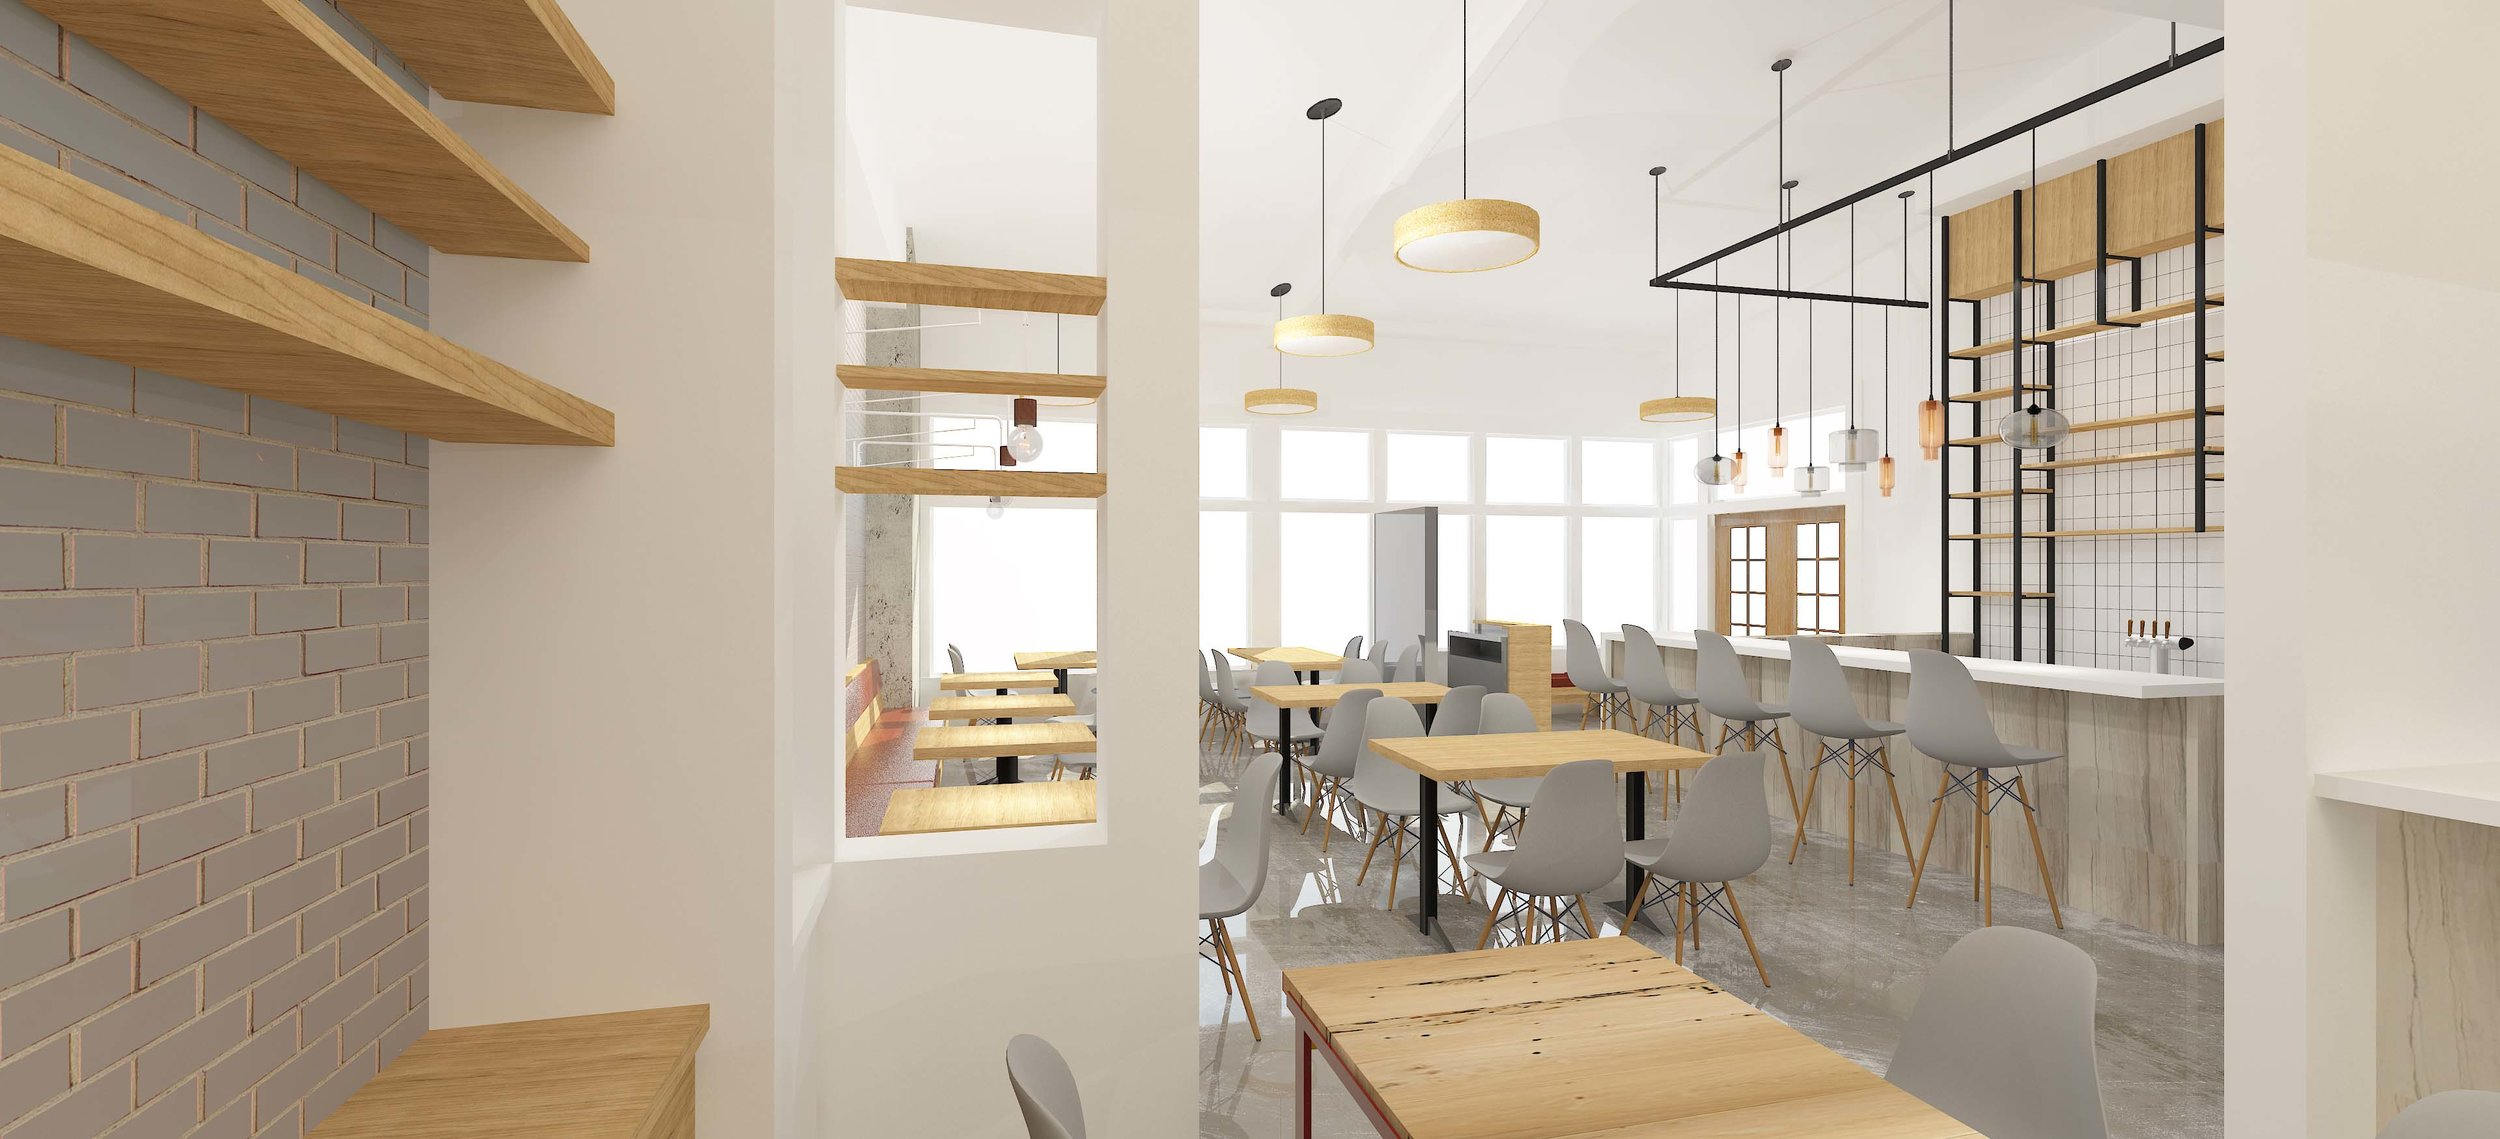 Image from rear of Bricola Restaurant Design Concept